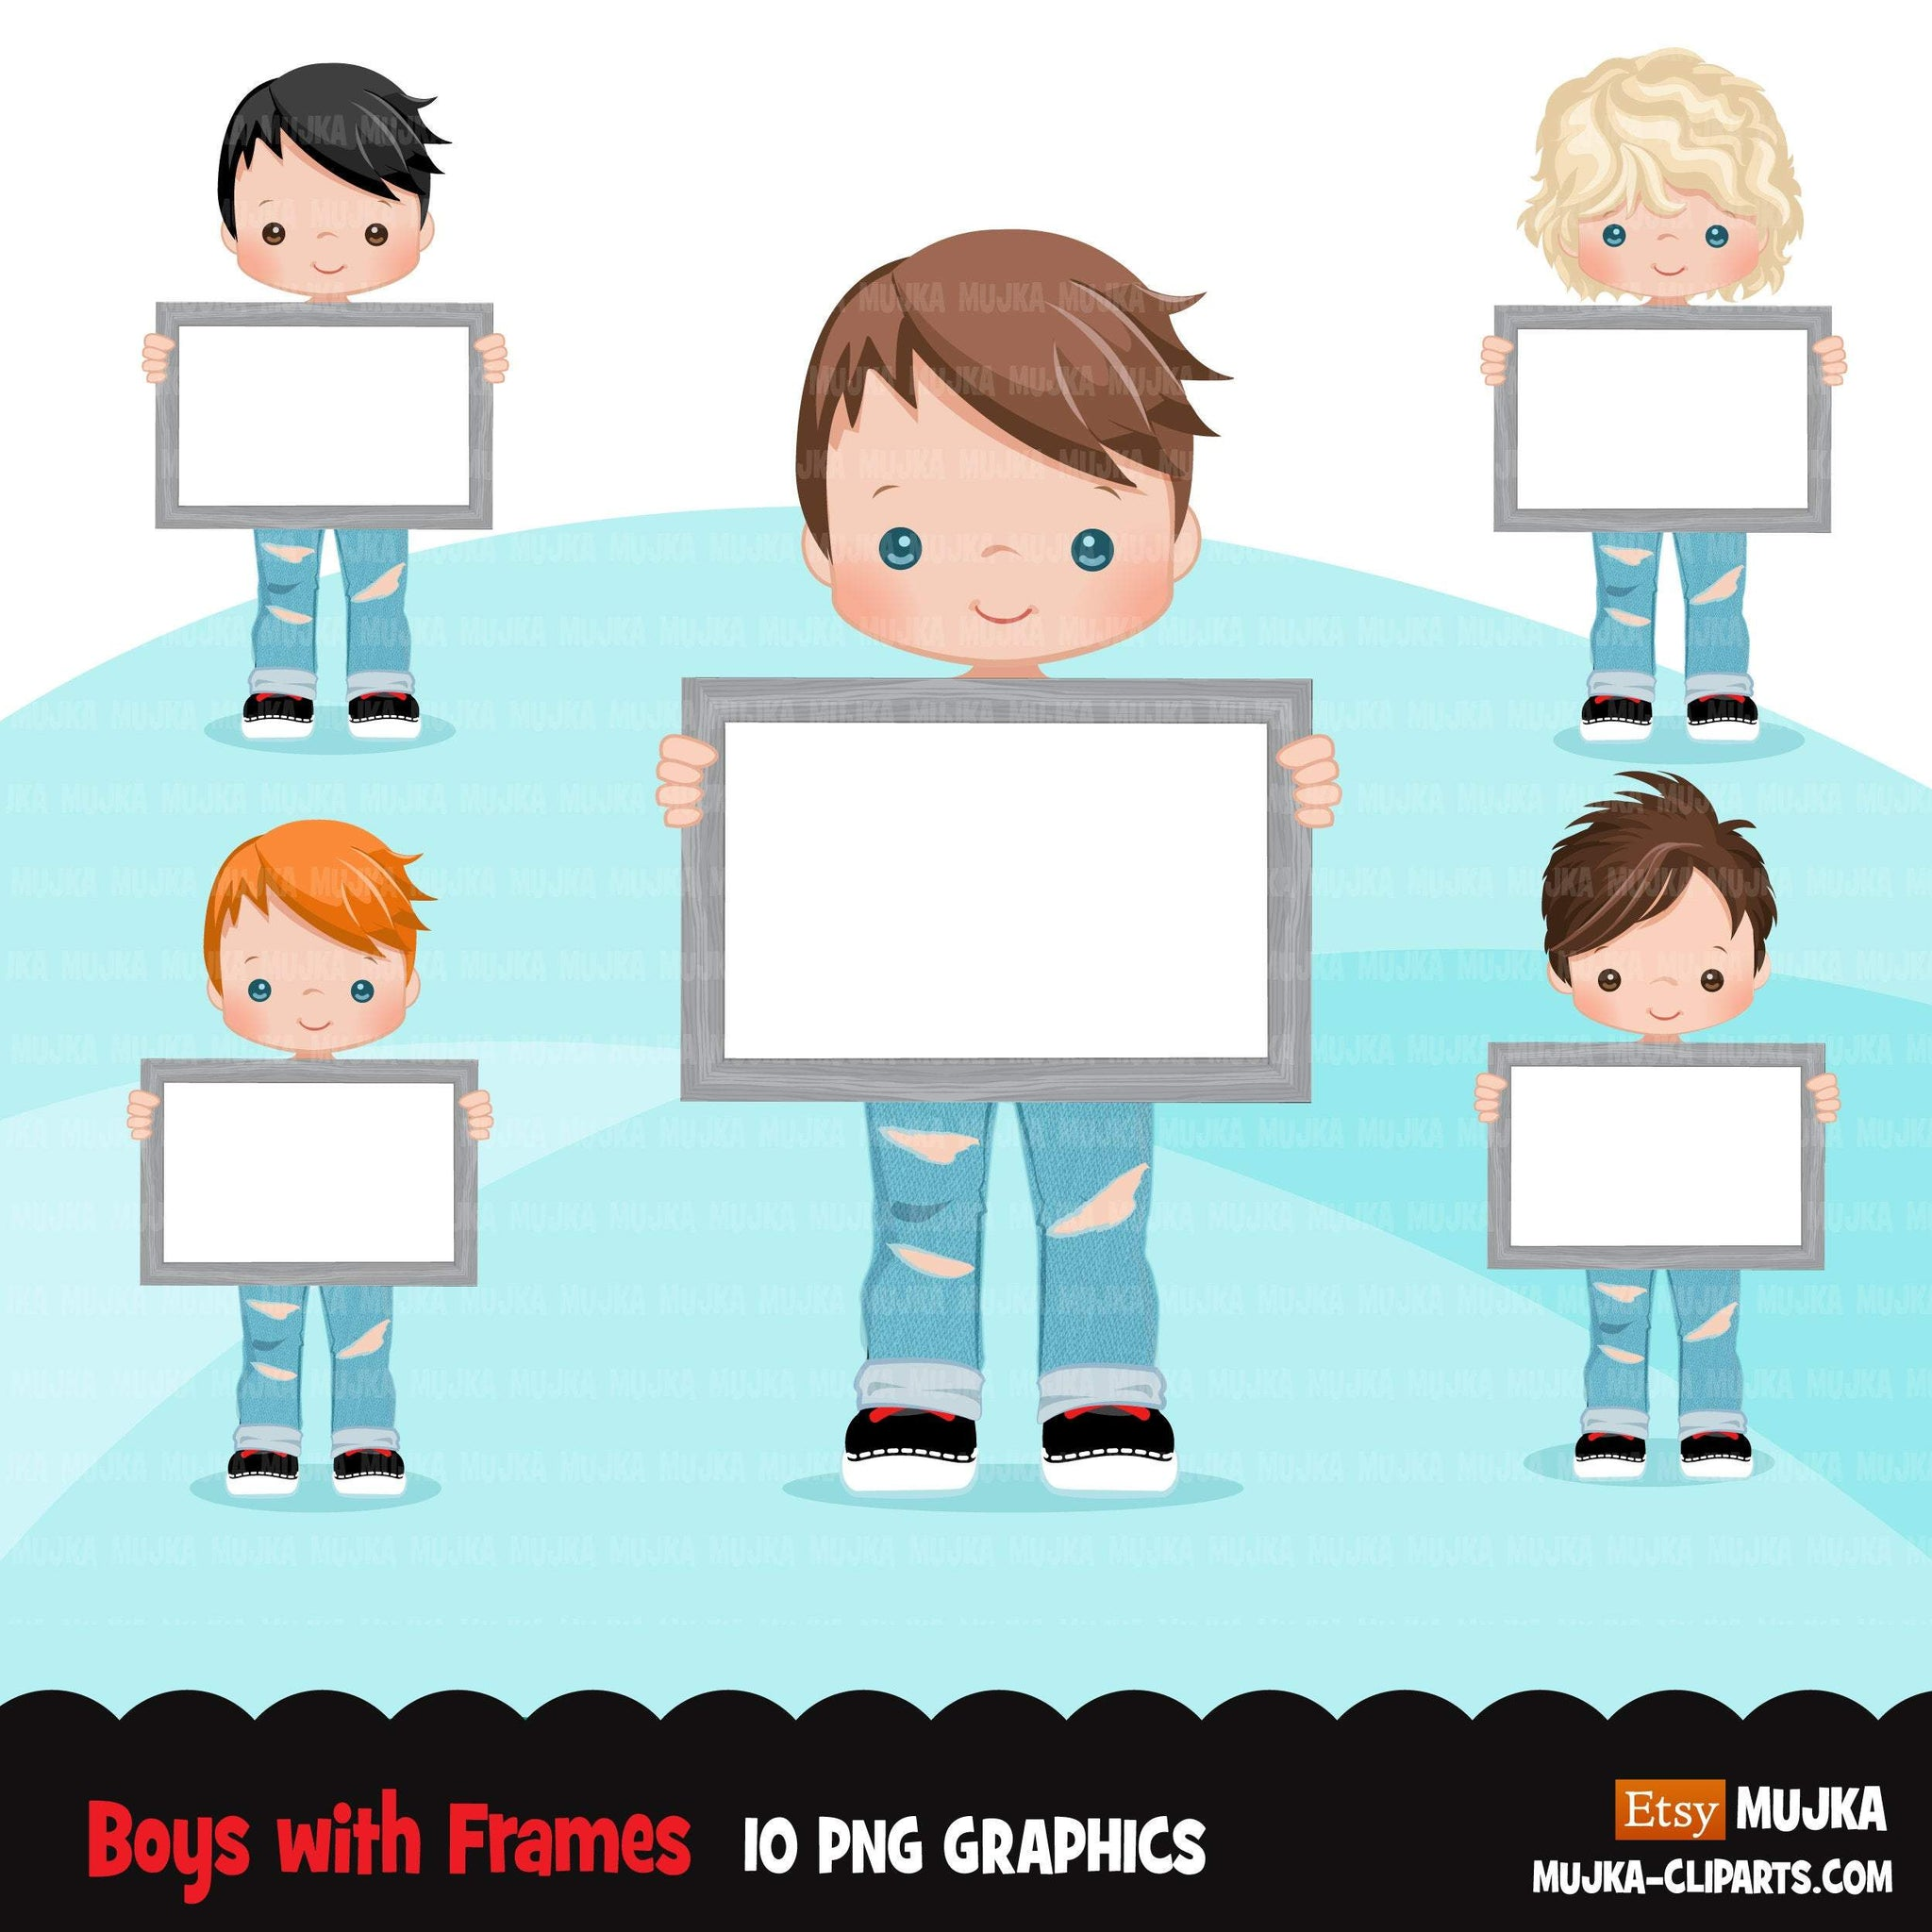 Boys holding frames Clipart, ripped jeans and boots cute kids with blank frame, sublimation Png digital clip art